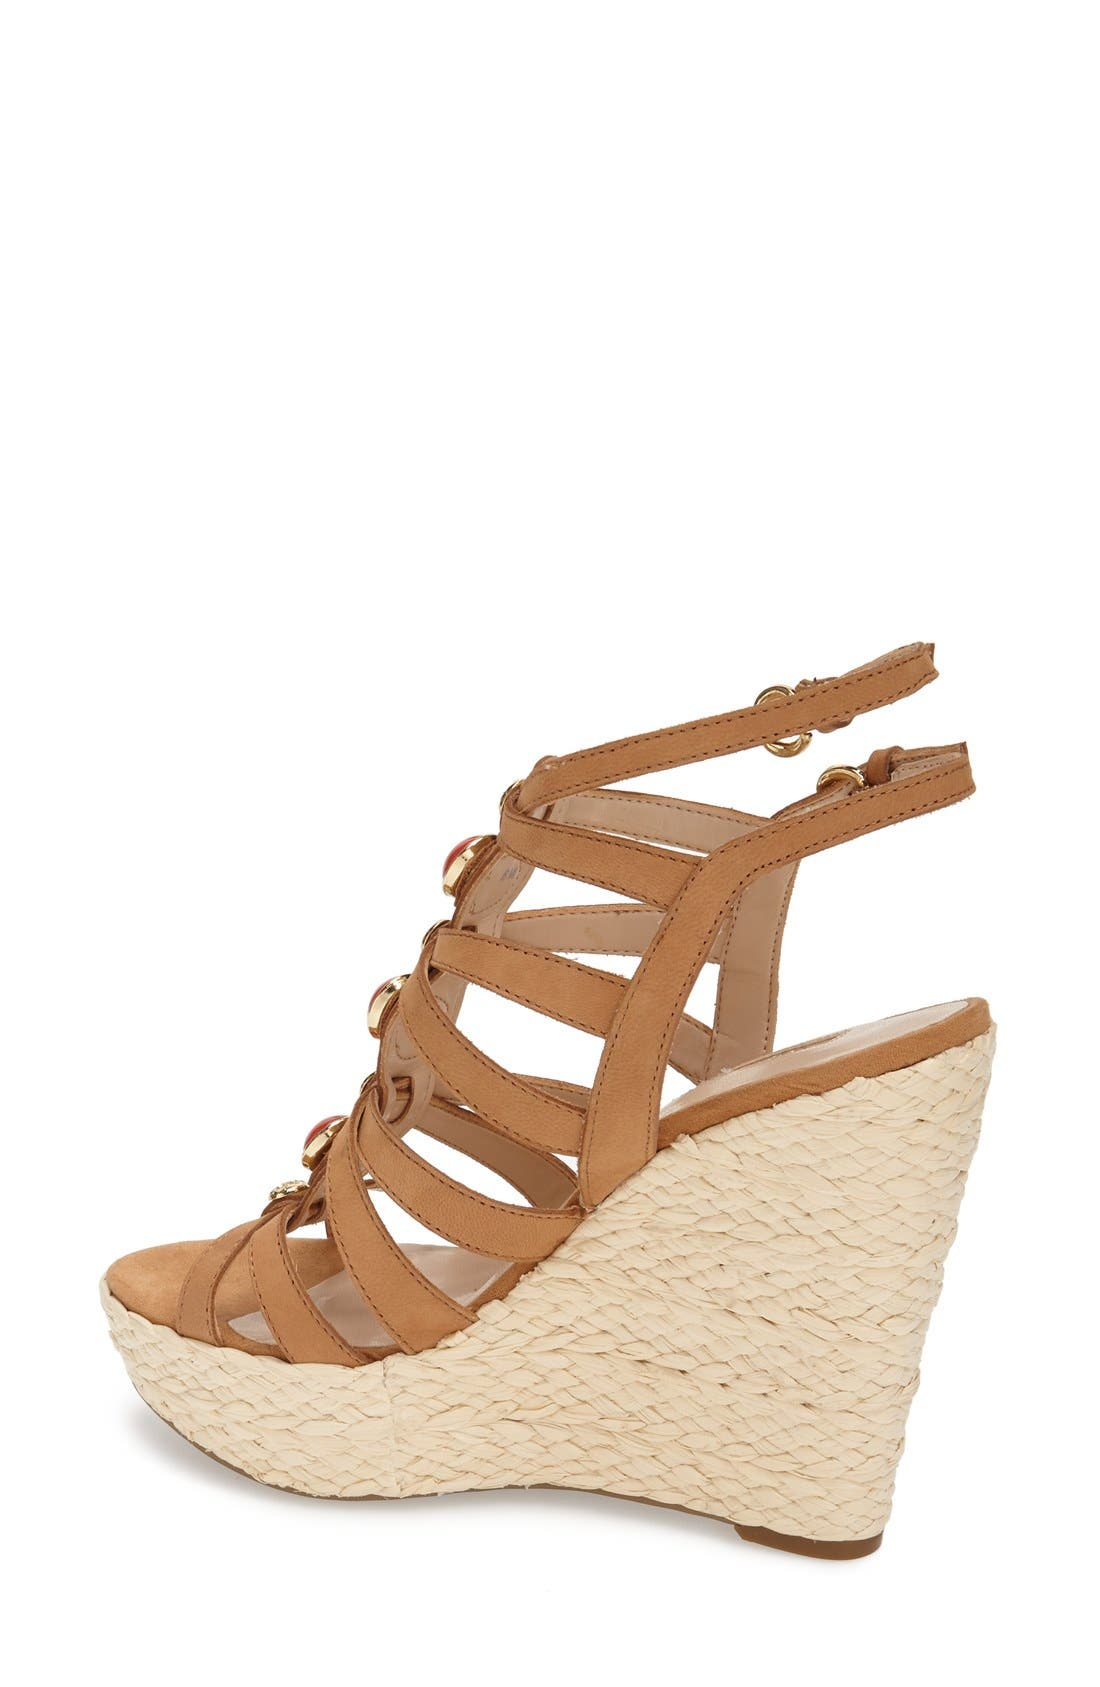 Alternate Image 2  - GUESS 'Onixx' Snake Embossed Leather Wedge Sandal (Women)